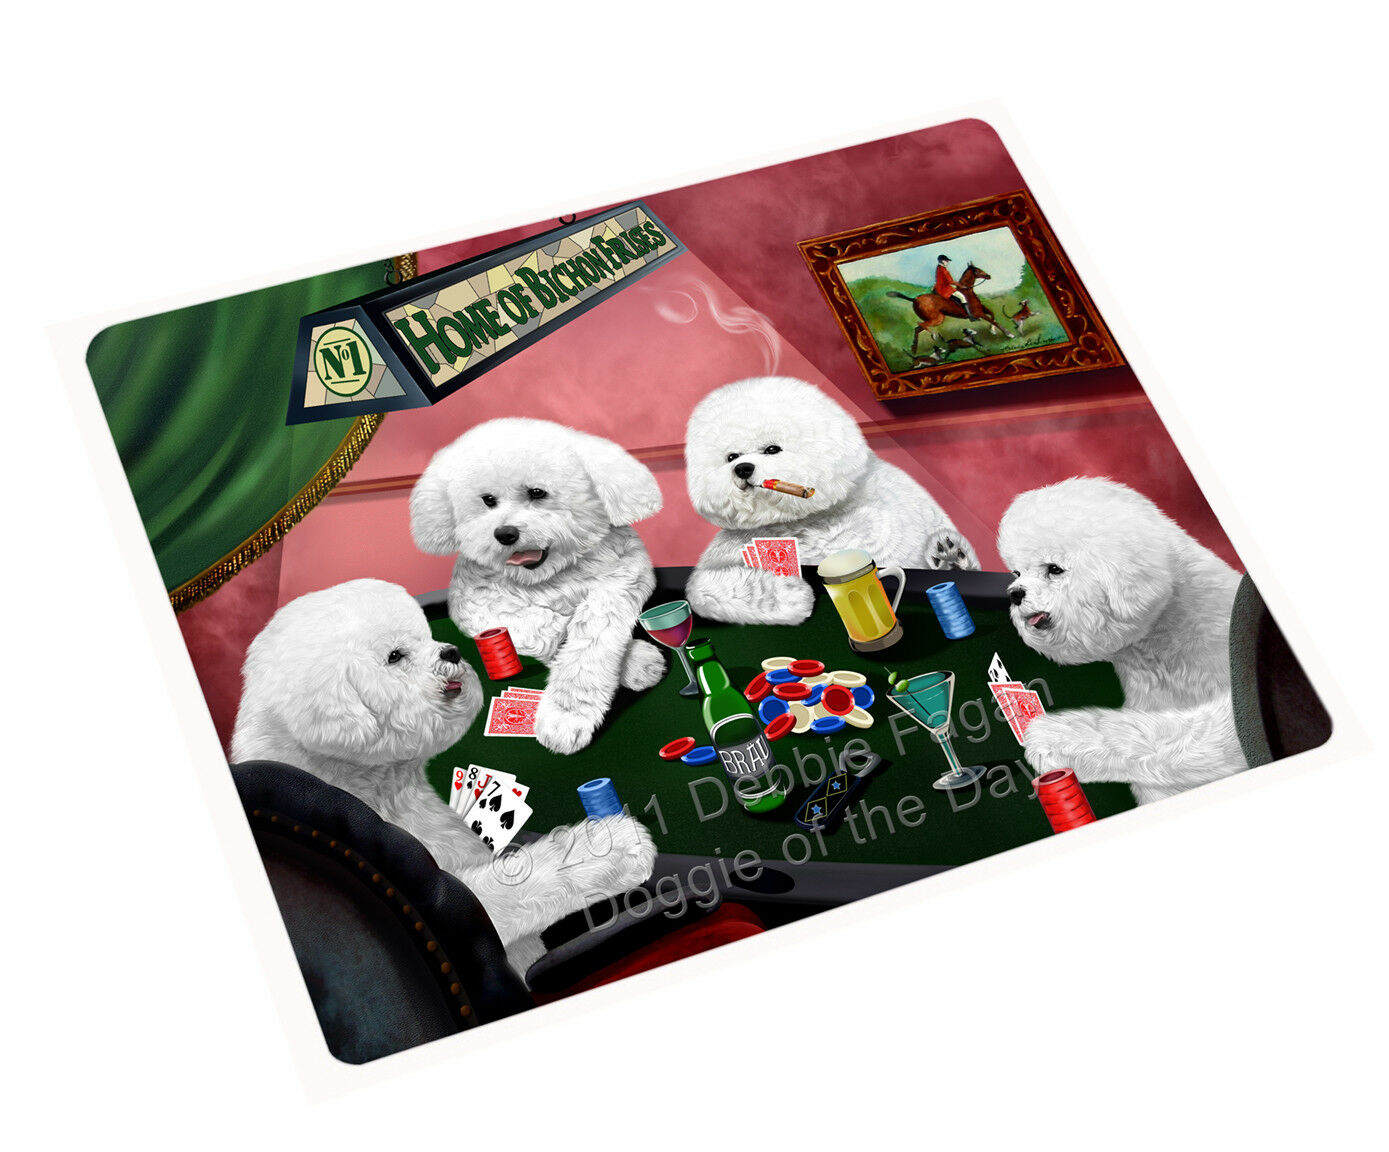 Home of Bichon Frise Hunds Playing Poker Woven Throw Sherpa Blanket NWT